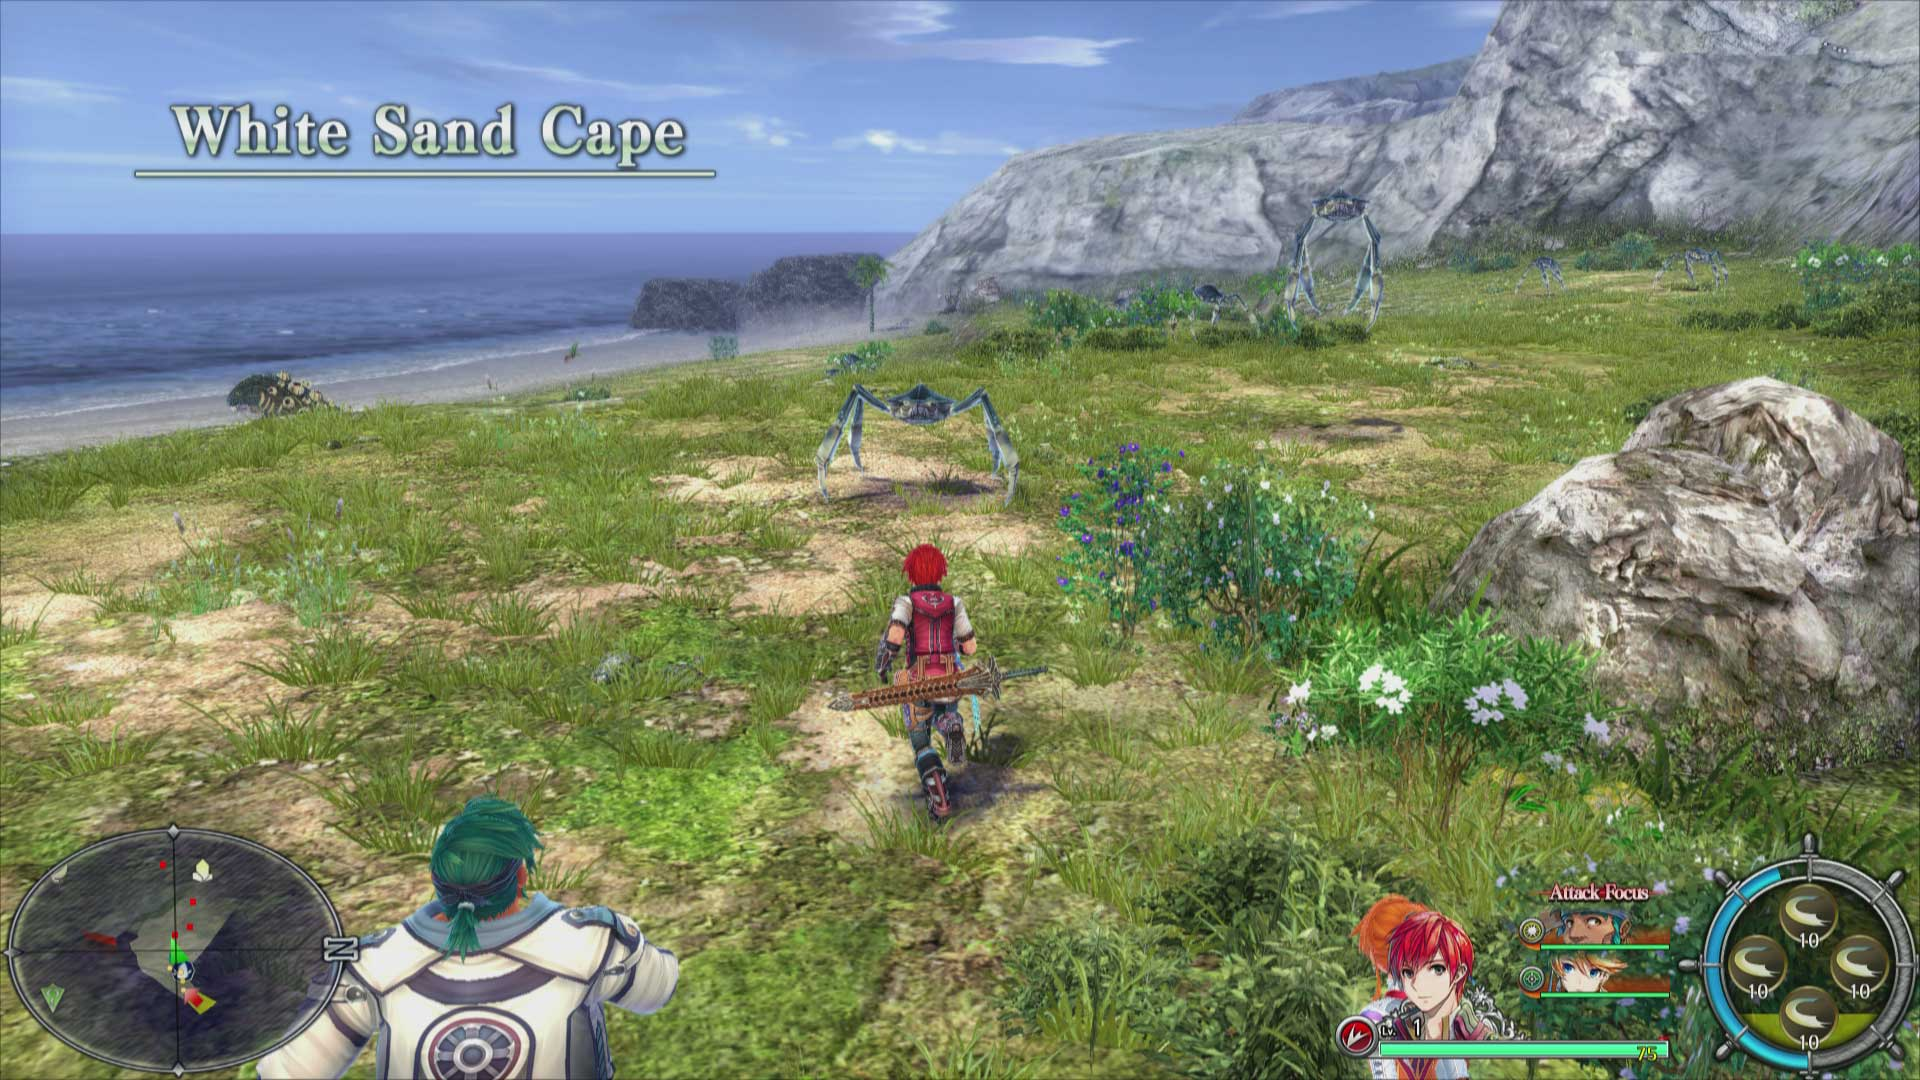 Ys Viii Lacrimosa Of Dana Pc Issues Addressed Crashes Workaround